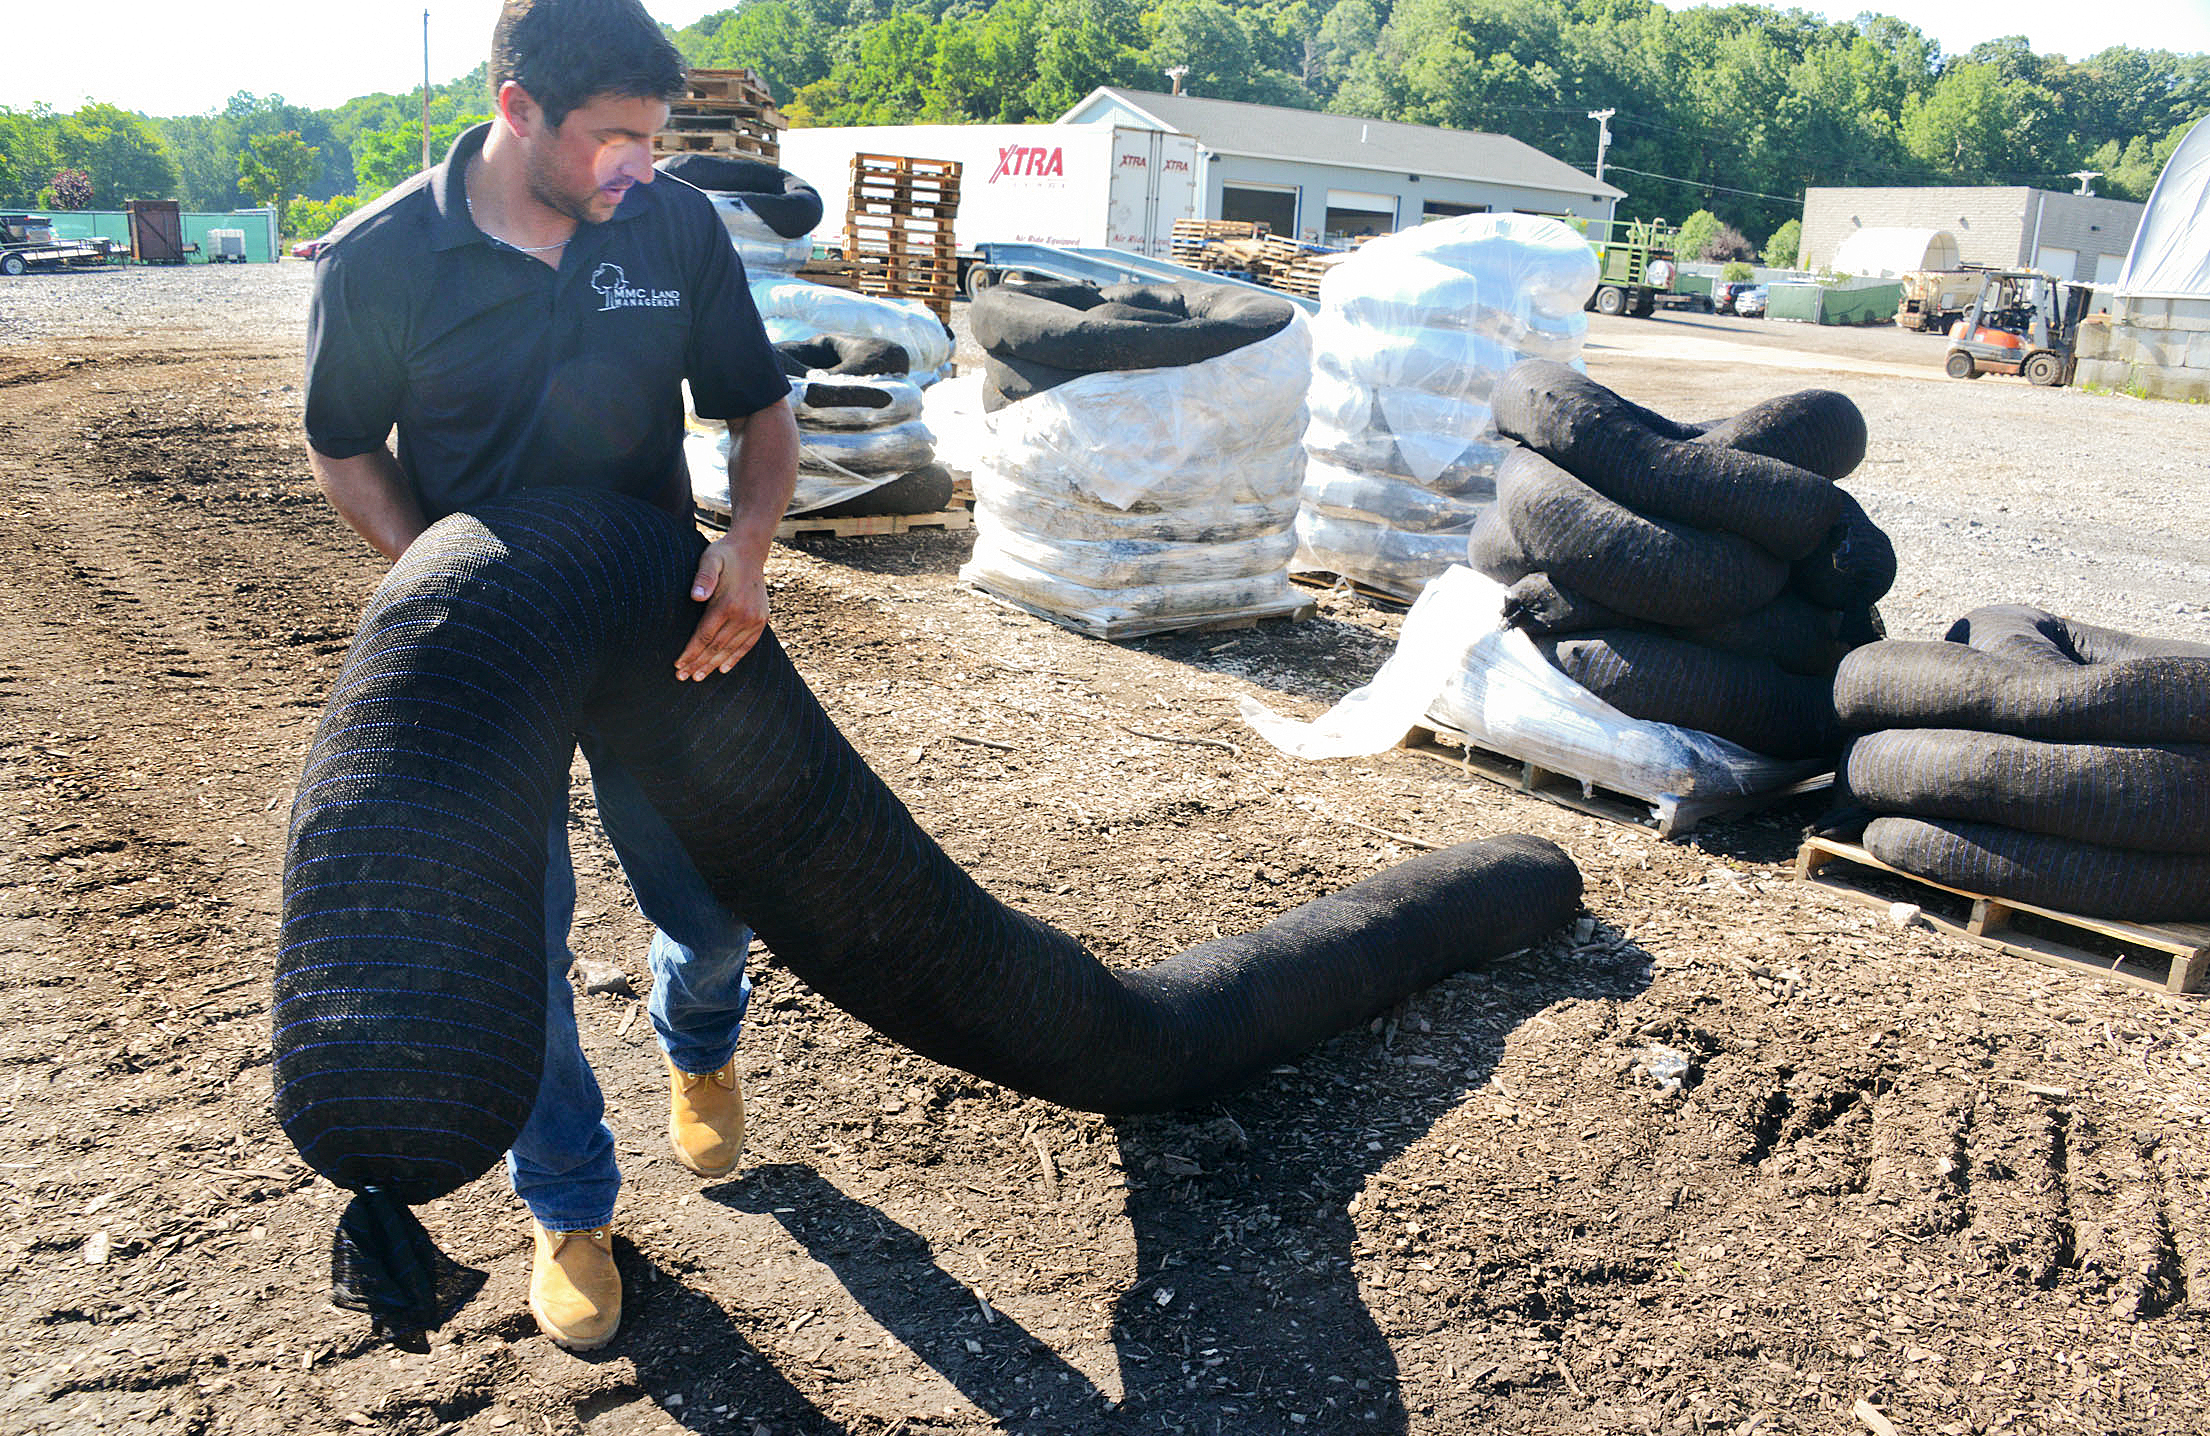 20140708dsDiamondsockBiz01 Christopher Platt, operations officer for MMC Land Management, carries a 24-inch pallet of Diamond Sock, a compost filter sock distributed by MKB Company.